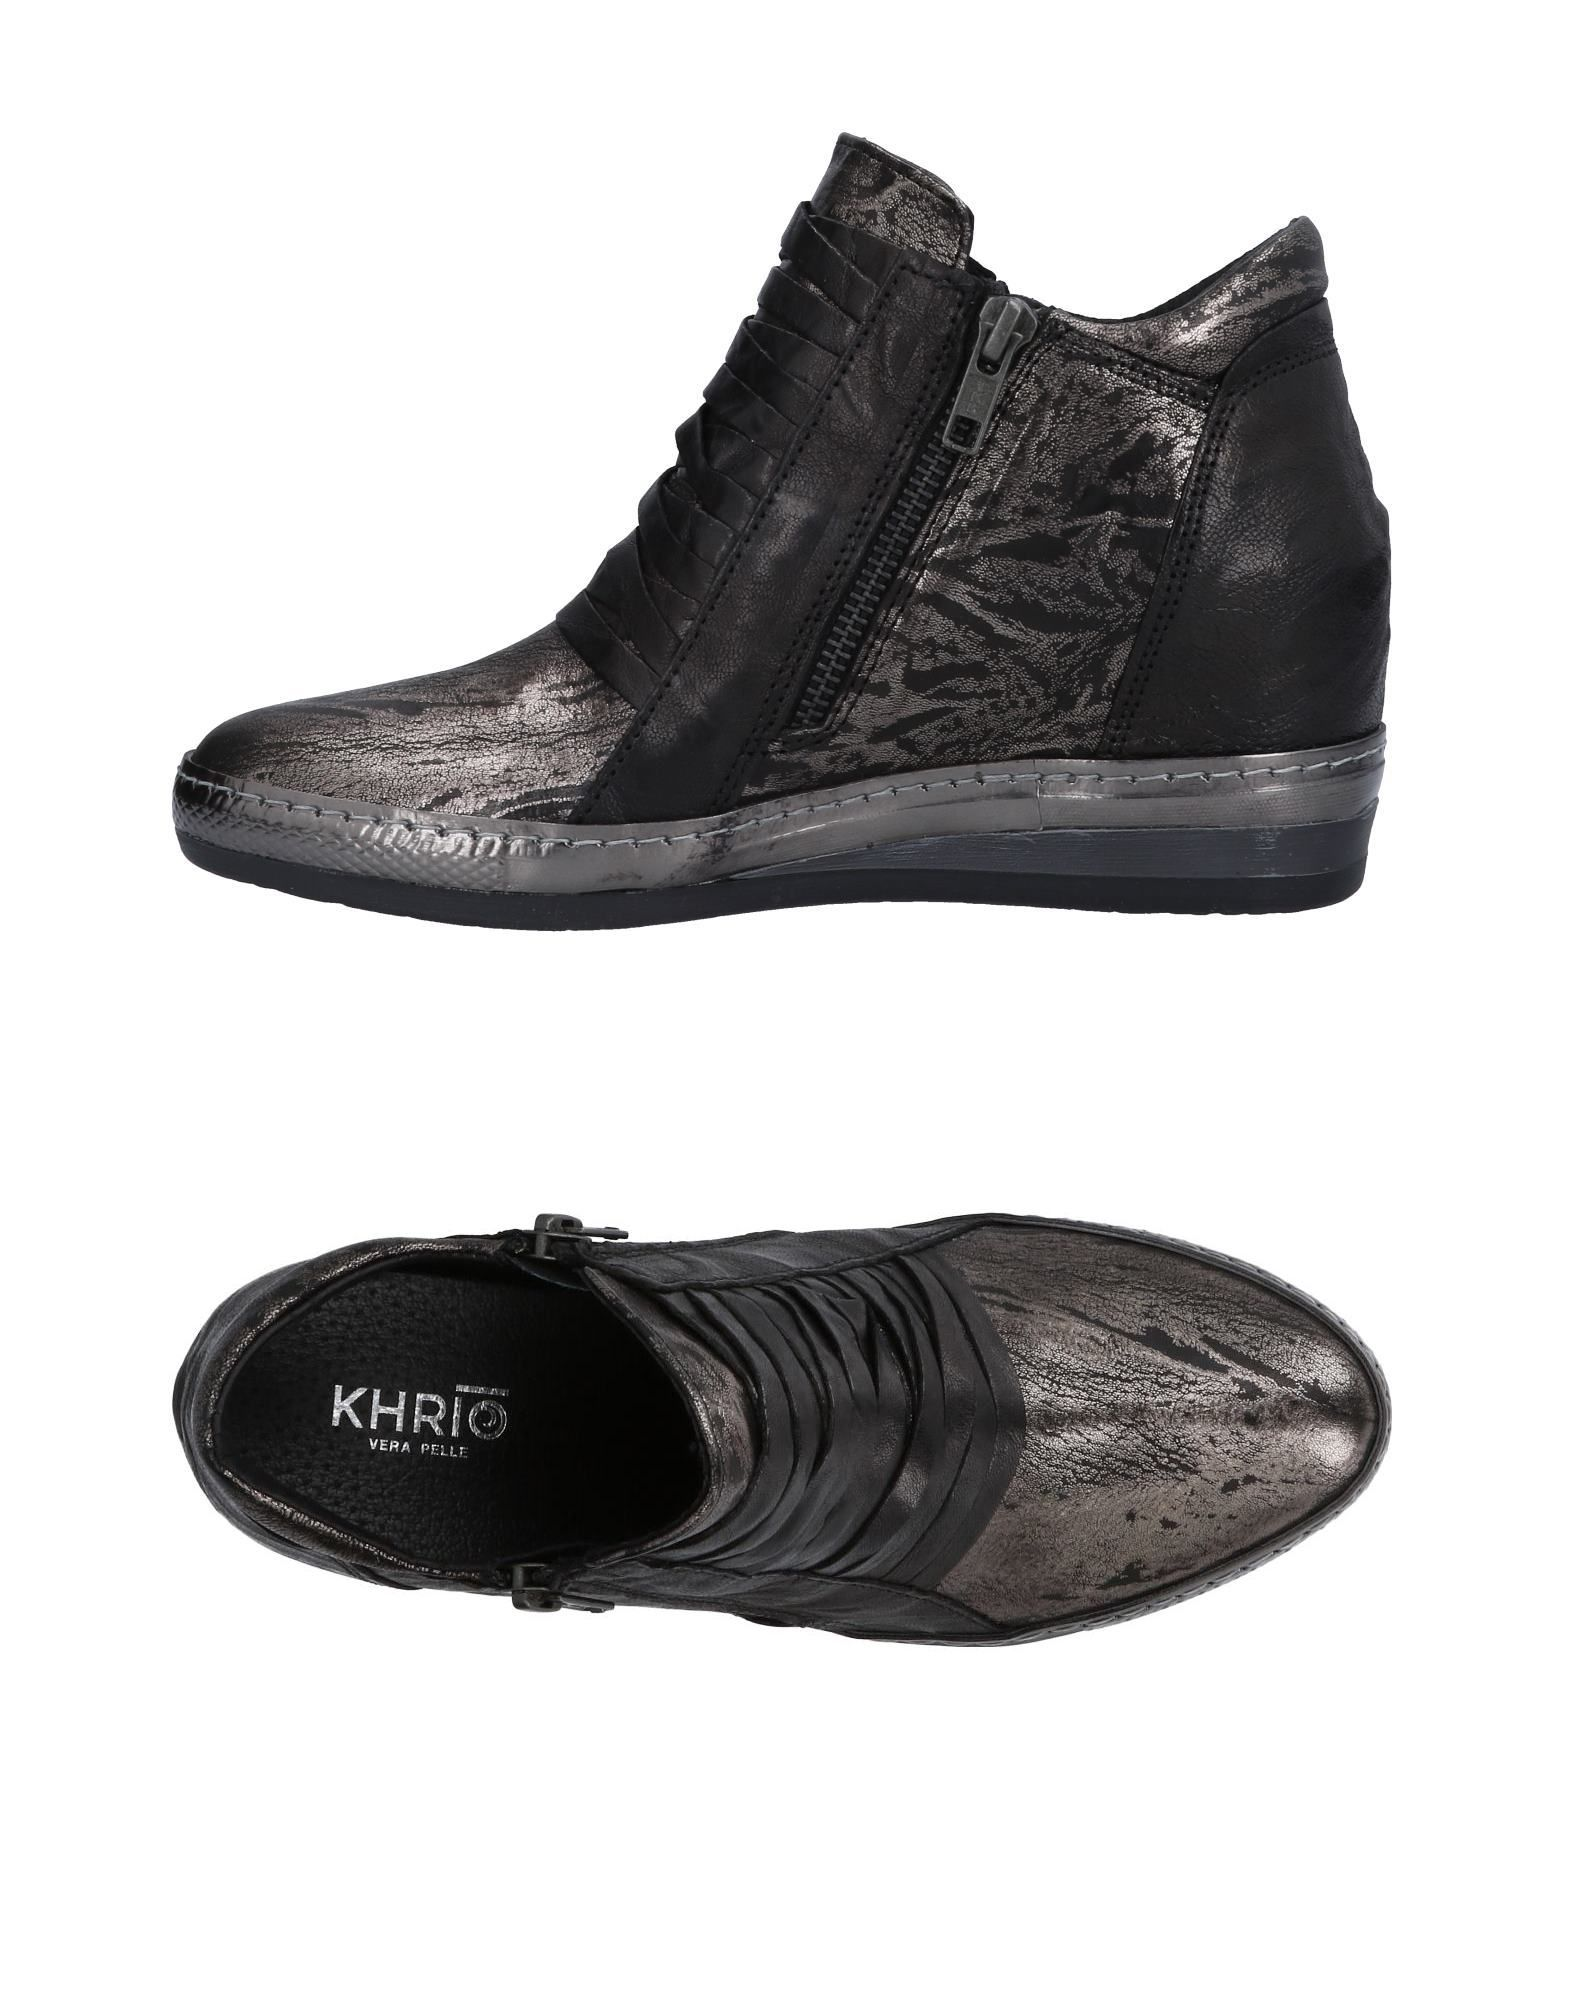 Khrio' Sneakers - - - Women Khrio' Sneakers online on  United Kingdom - 11492204QF 664258